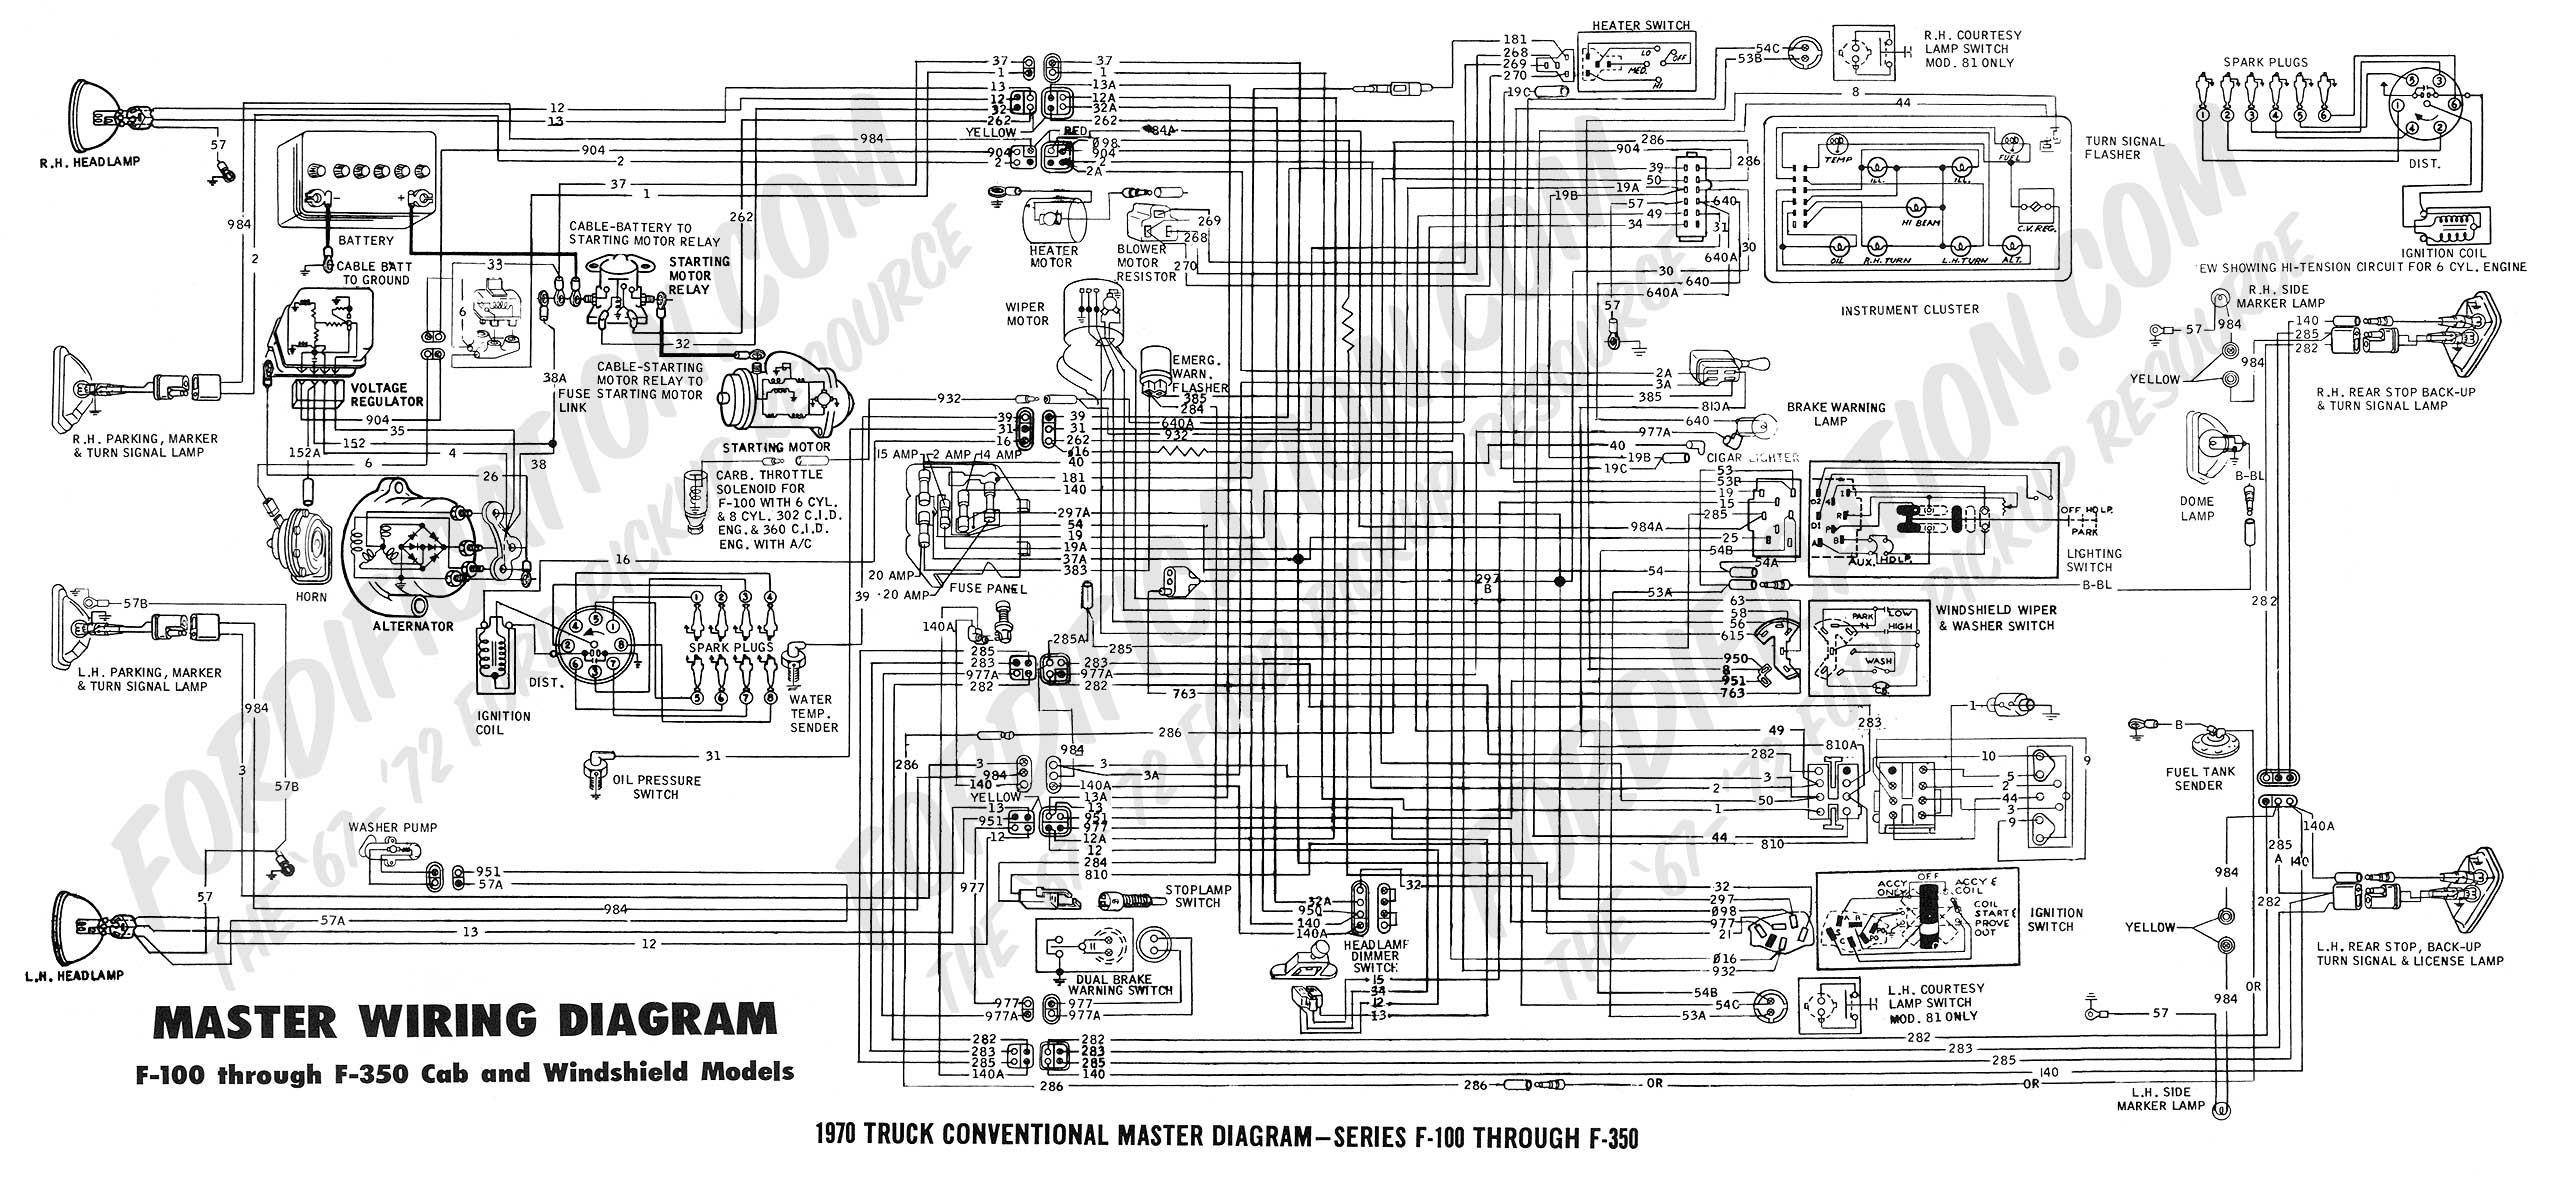 wiring diagram 70_master ford truck technical drawings and schematics section h wiring Rock Layes Tilt Diagram at bayanpartner.co